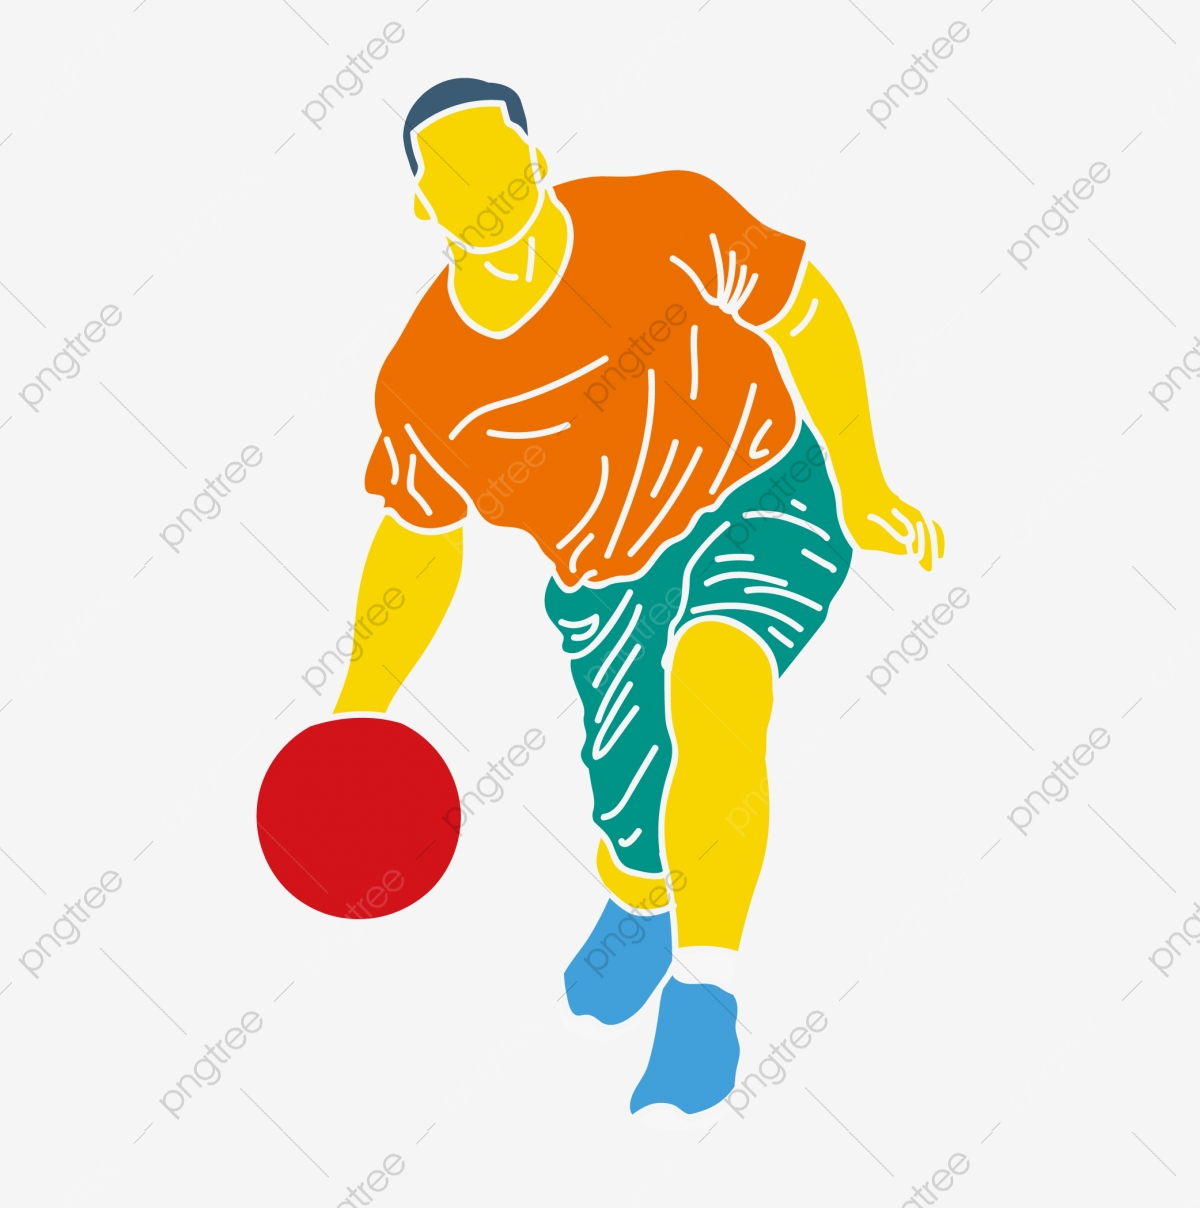 Basketball player passes. vector sillhouette.